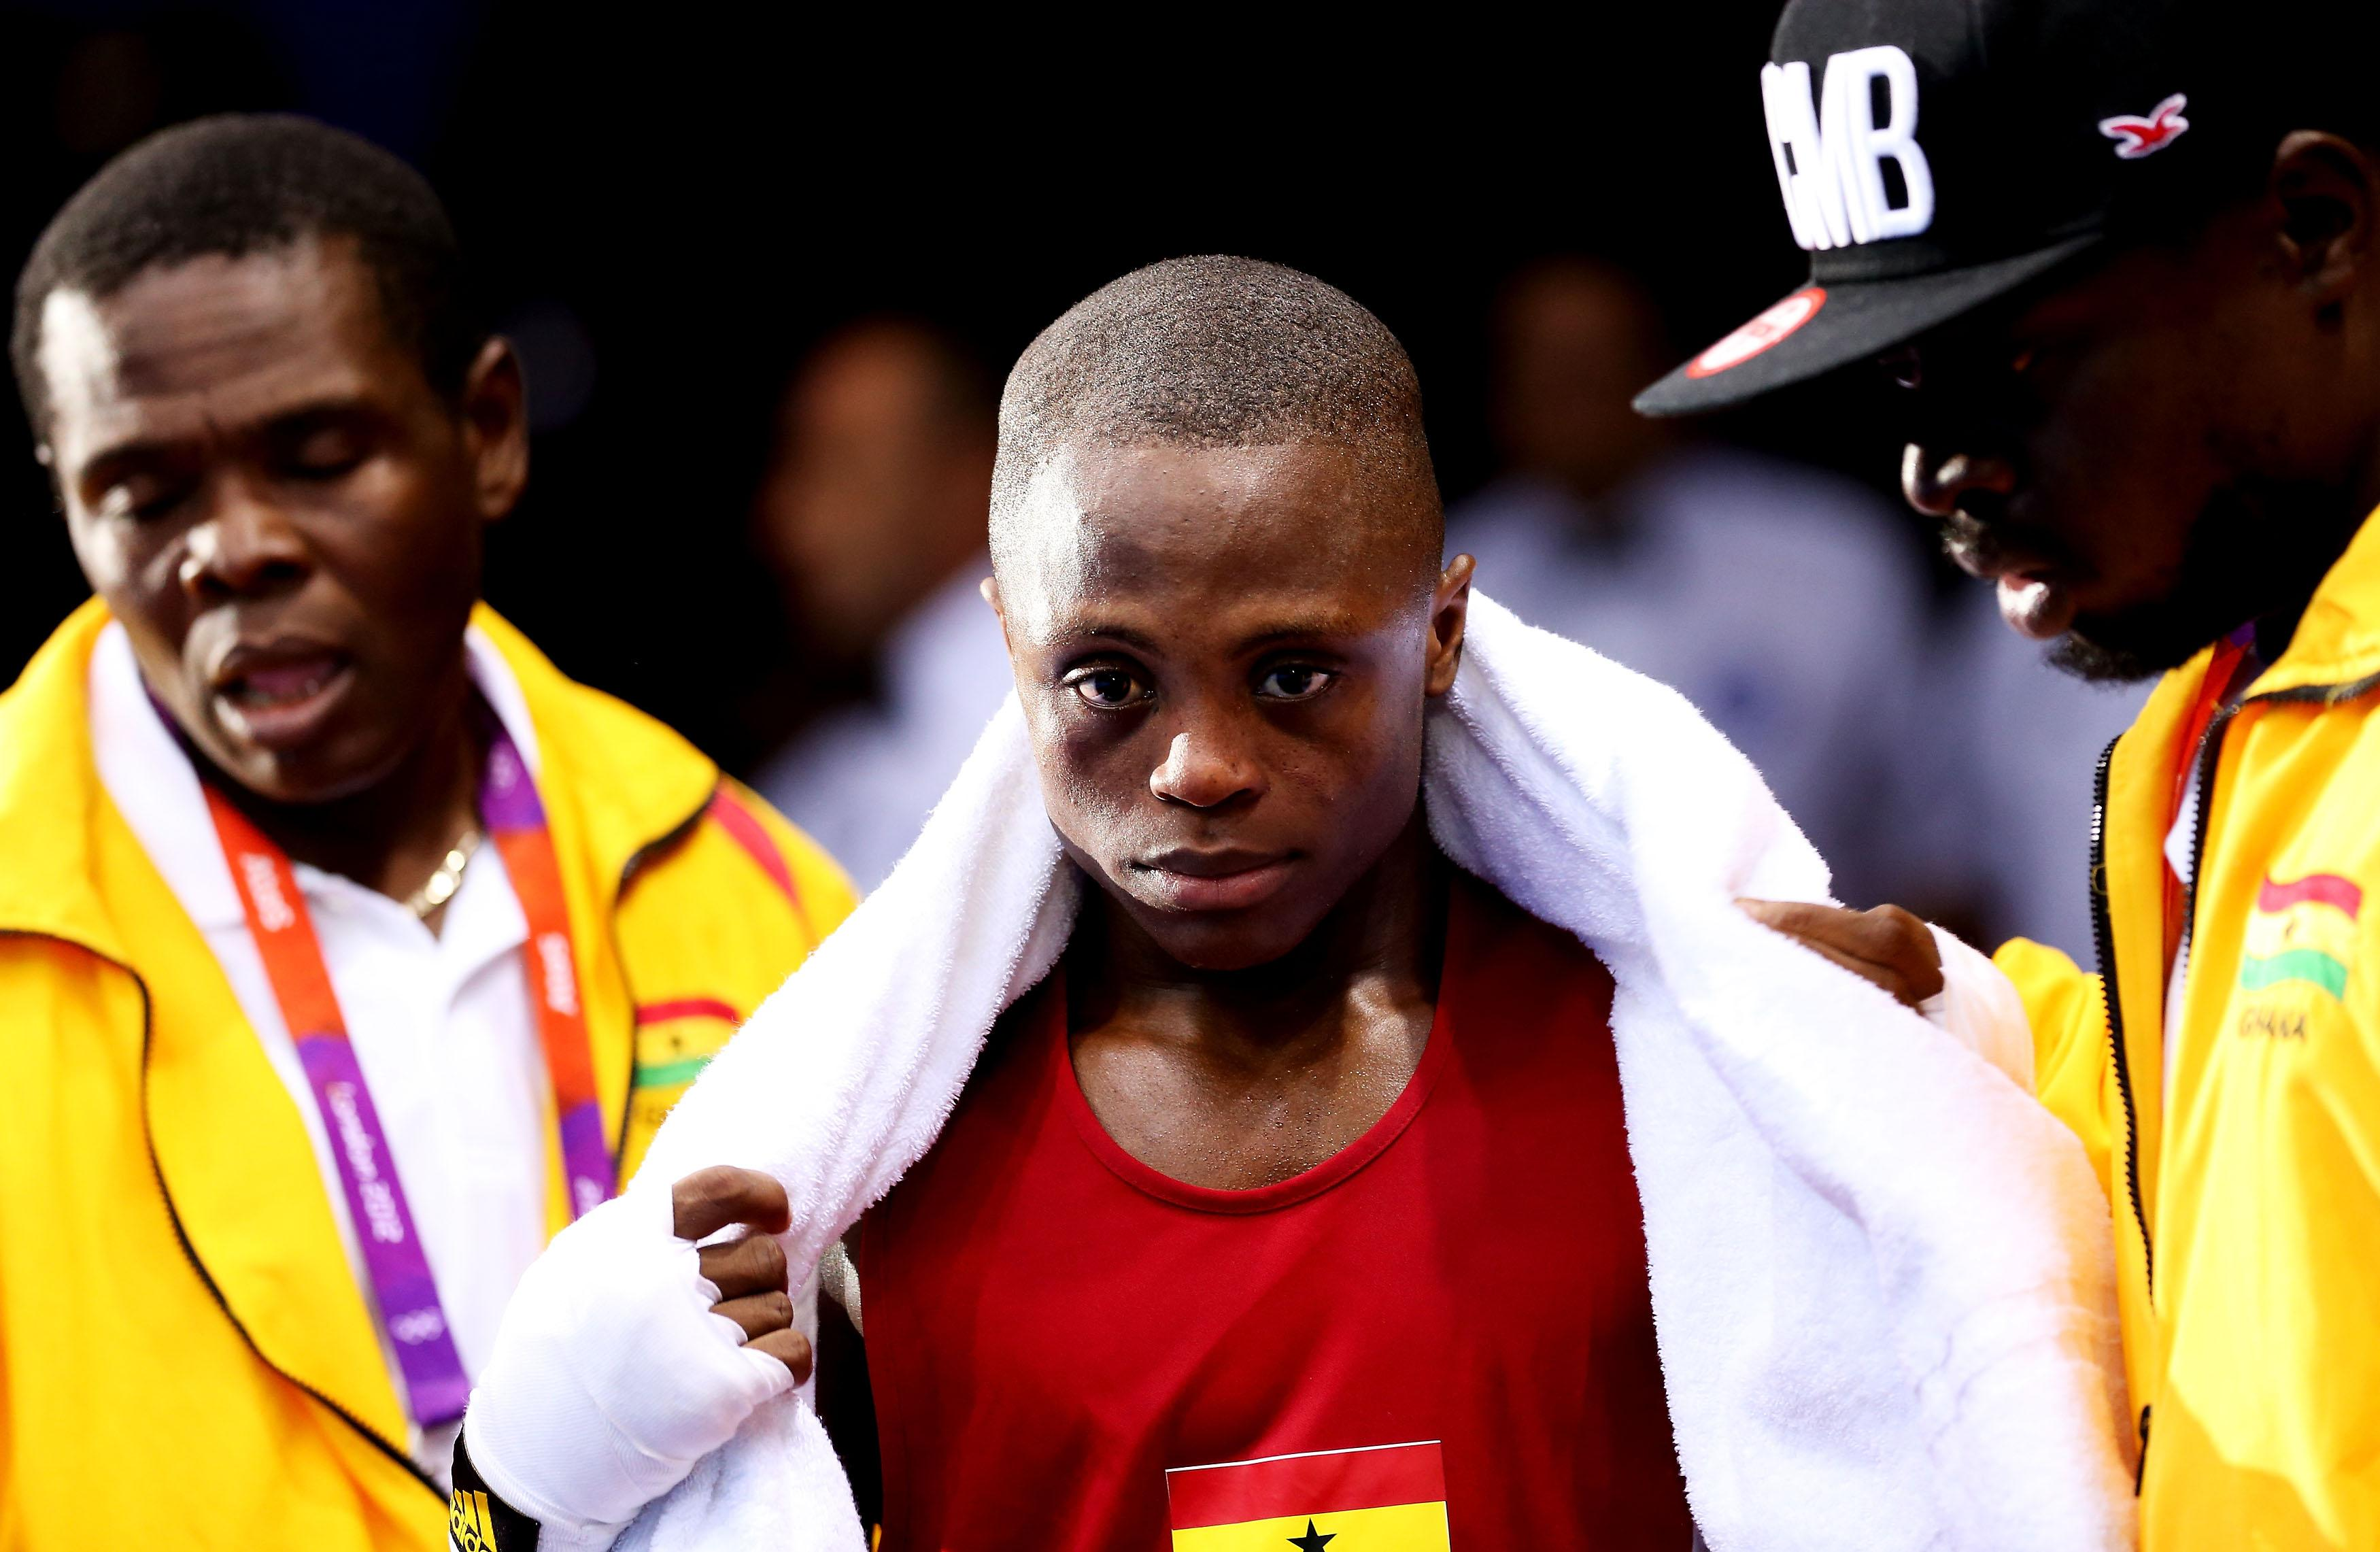 London 2012 was the scene of a daylight robbery as 17-year-old Dogboe was robbed